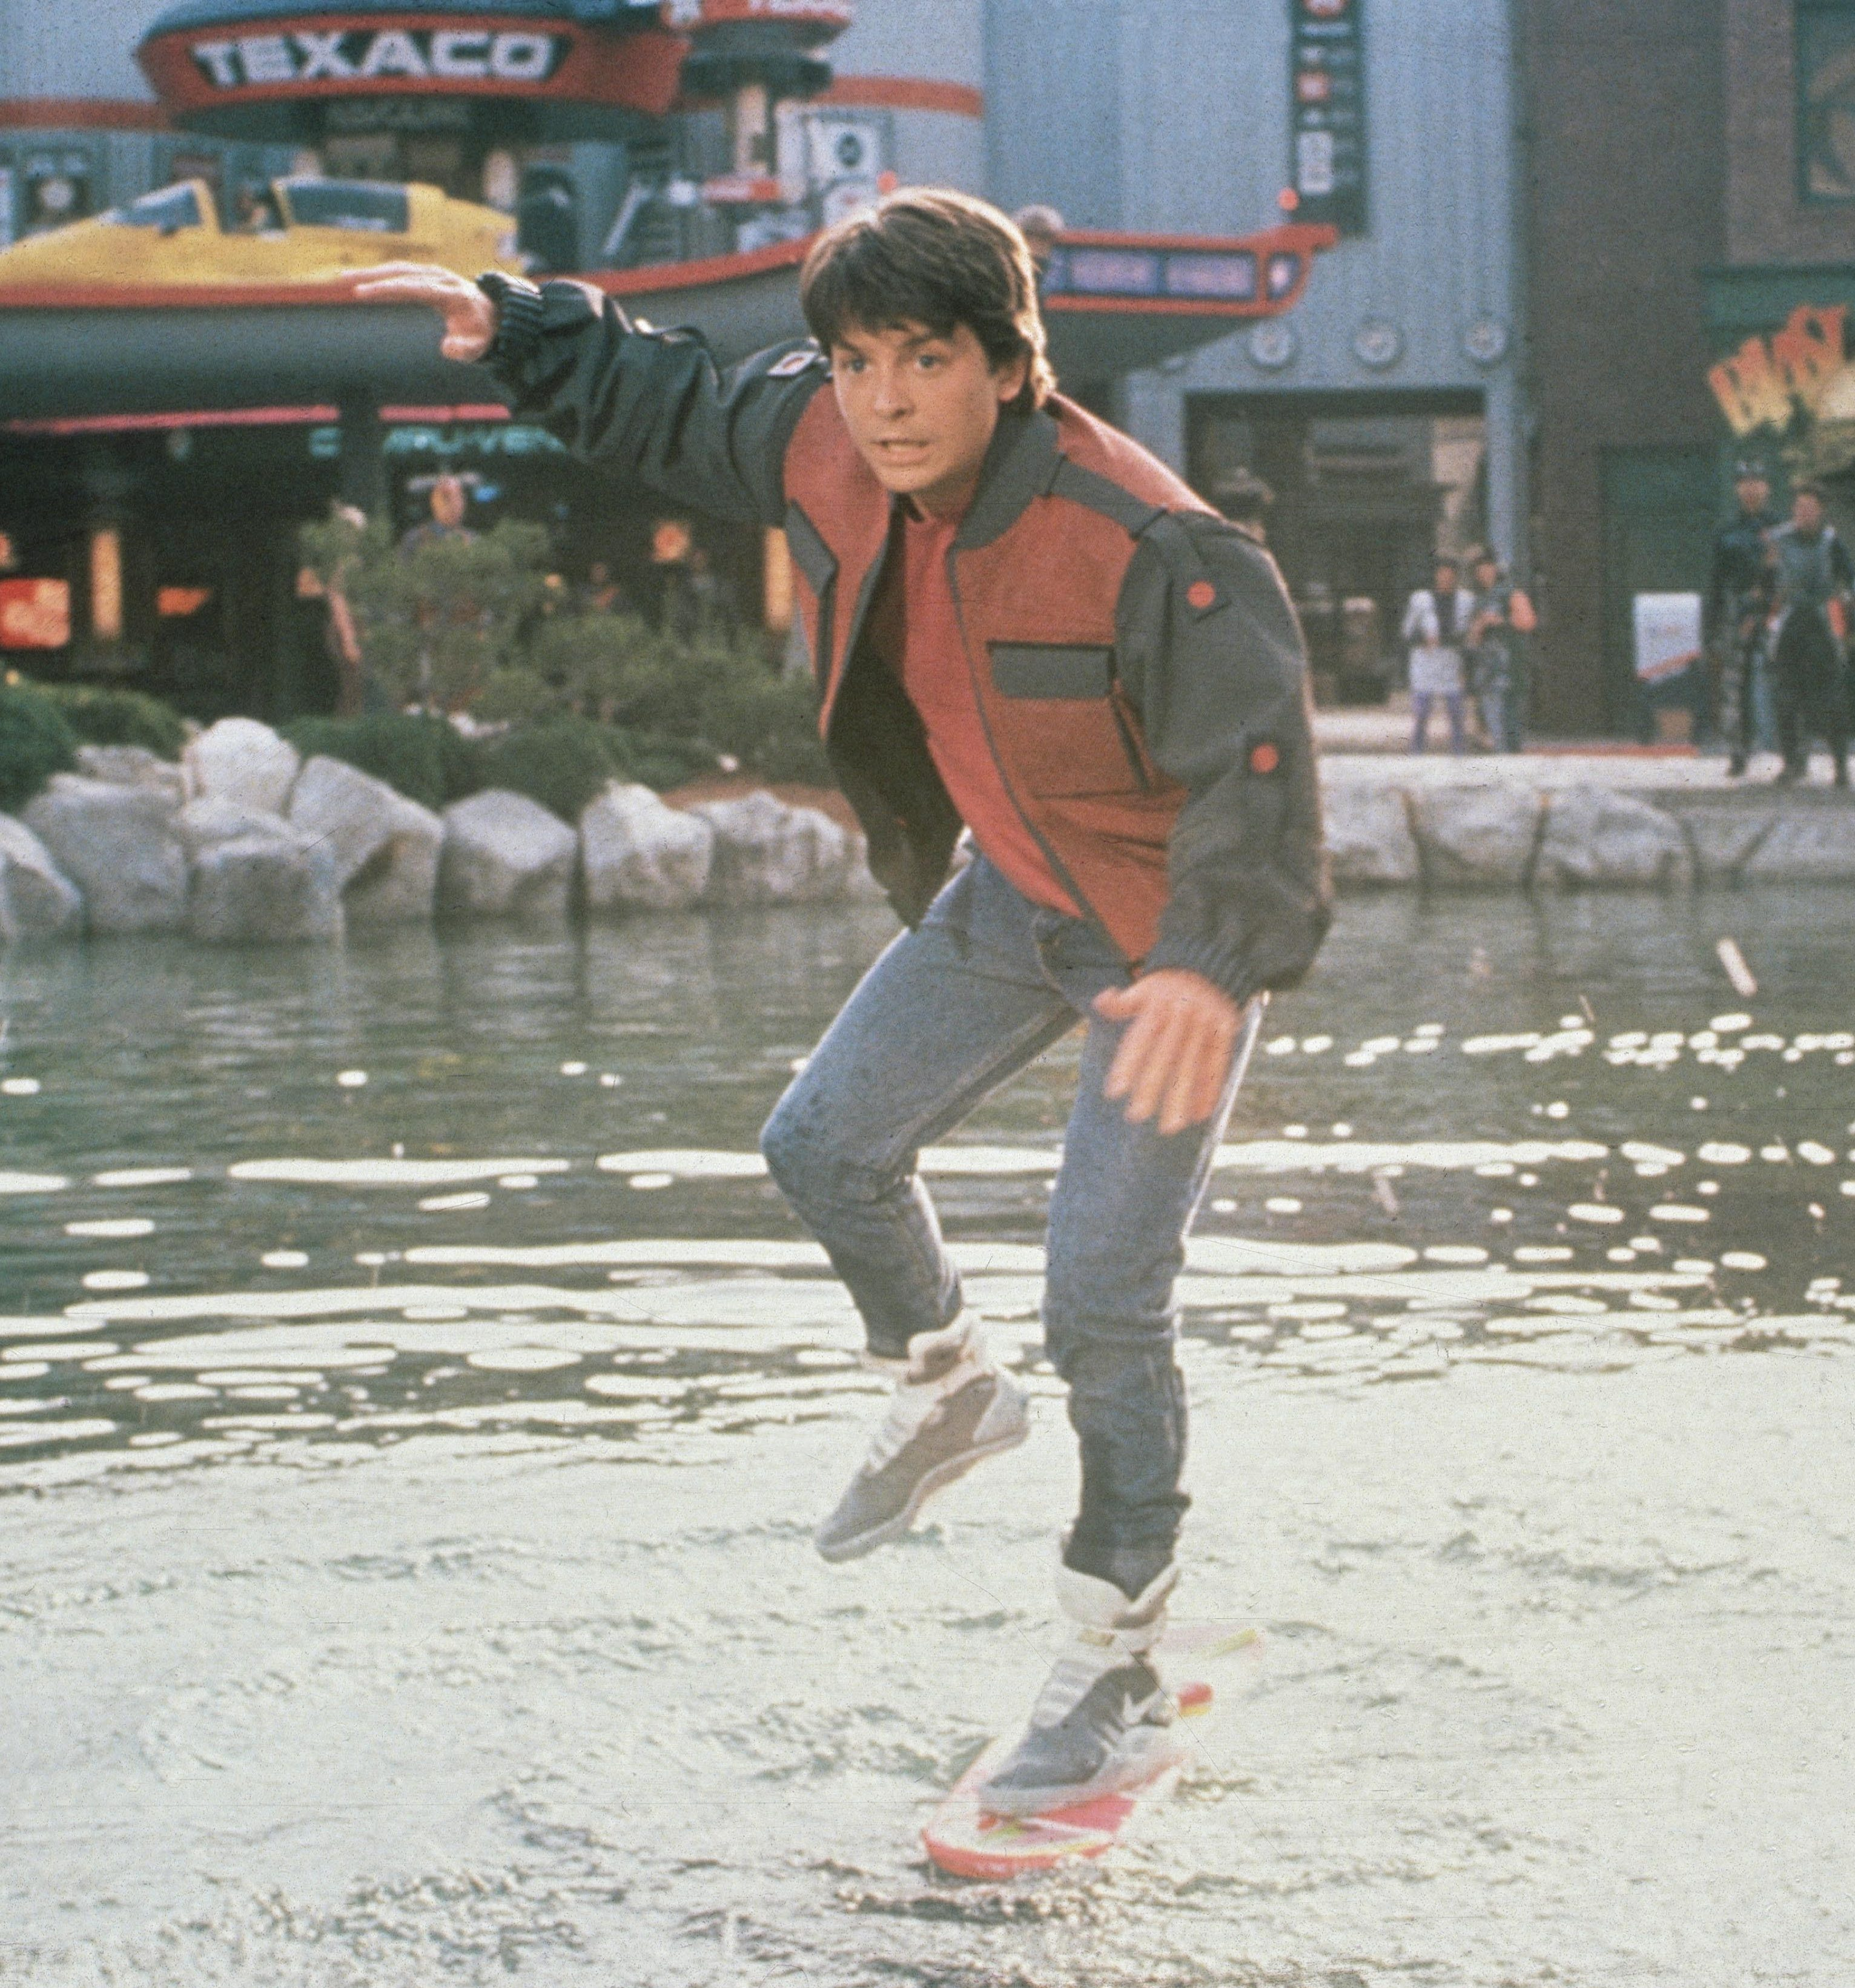 450049599 e1599044659283 Fascinating Futuristic Facts About Back to the Future Part II